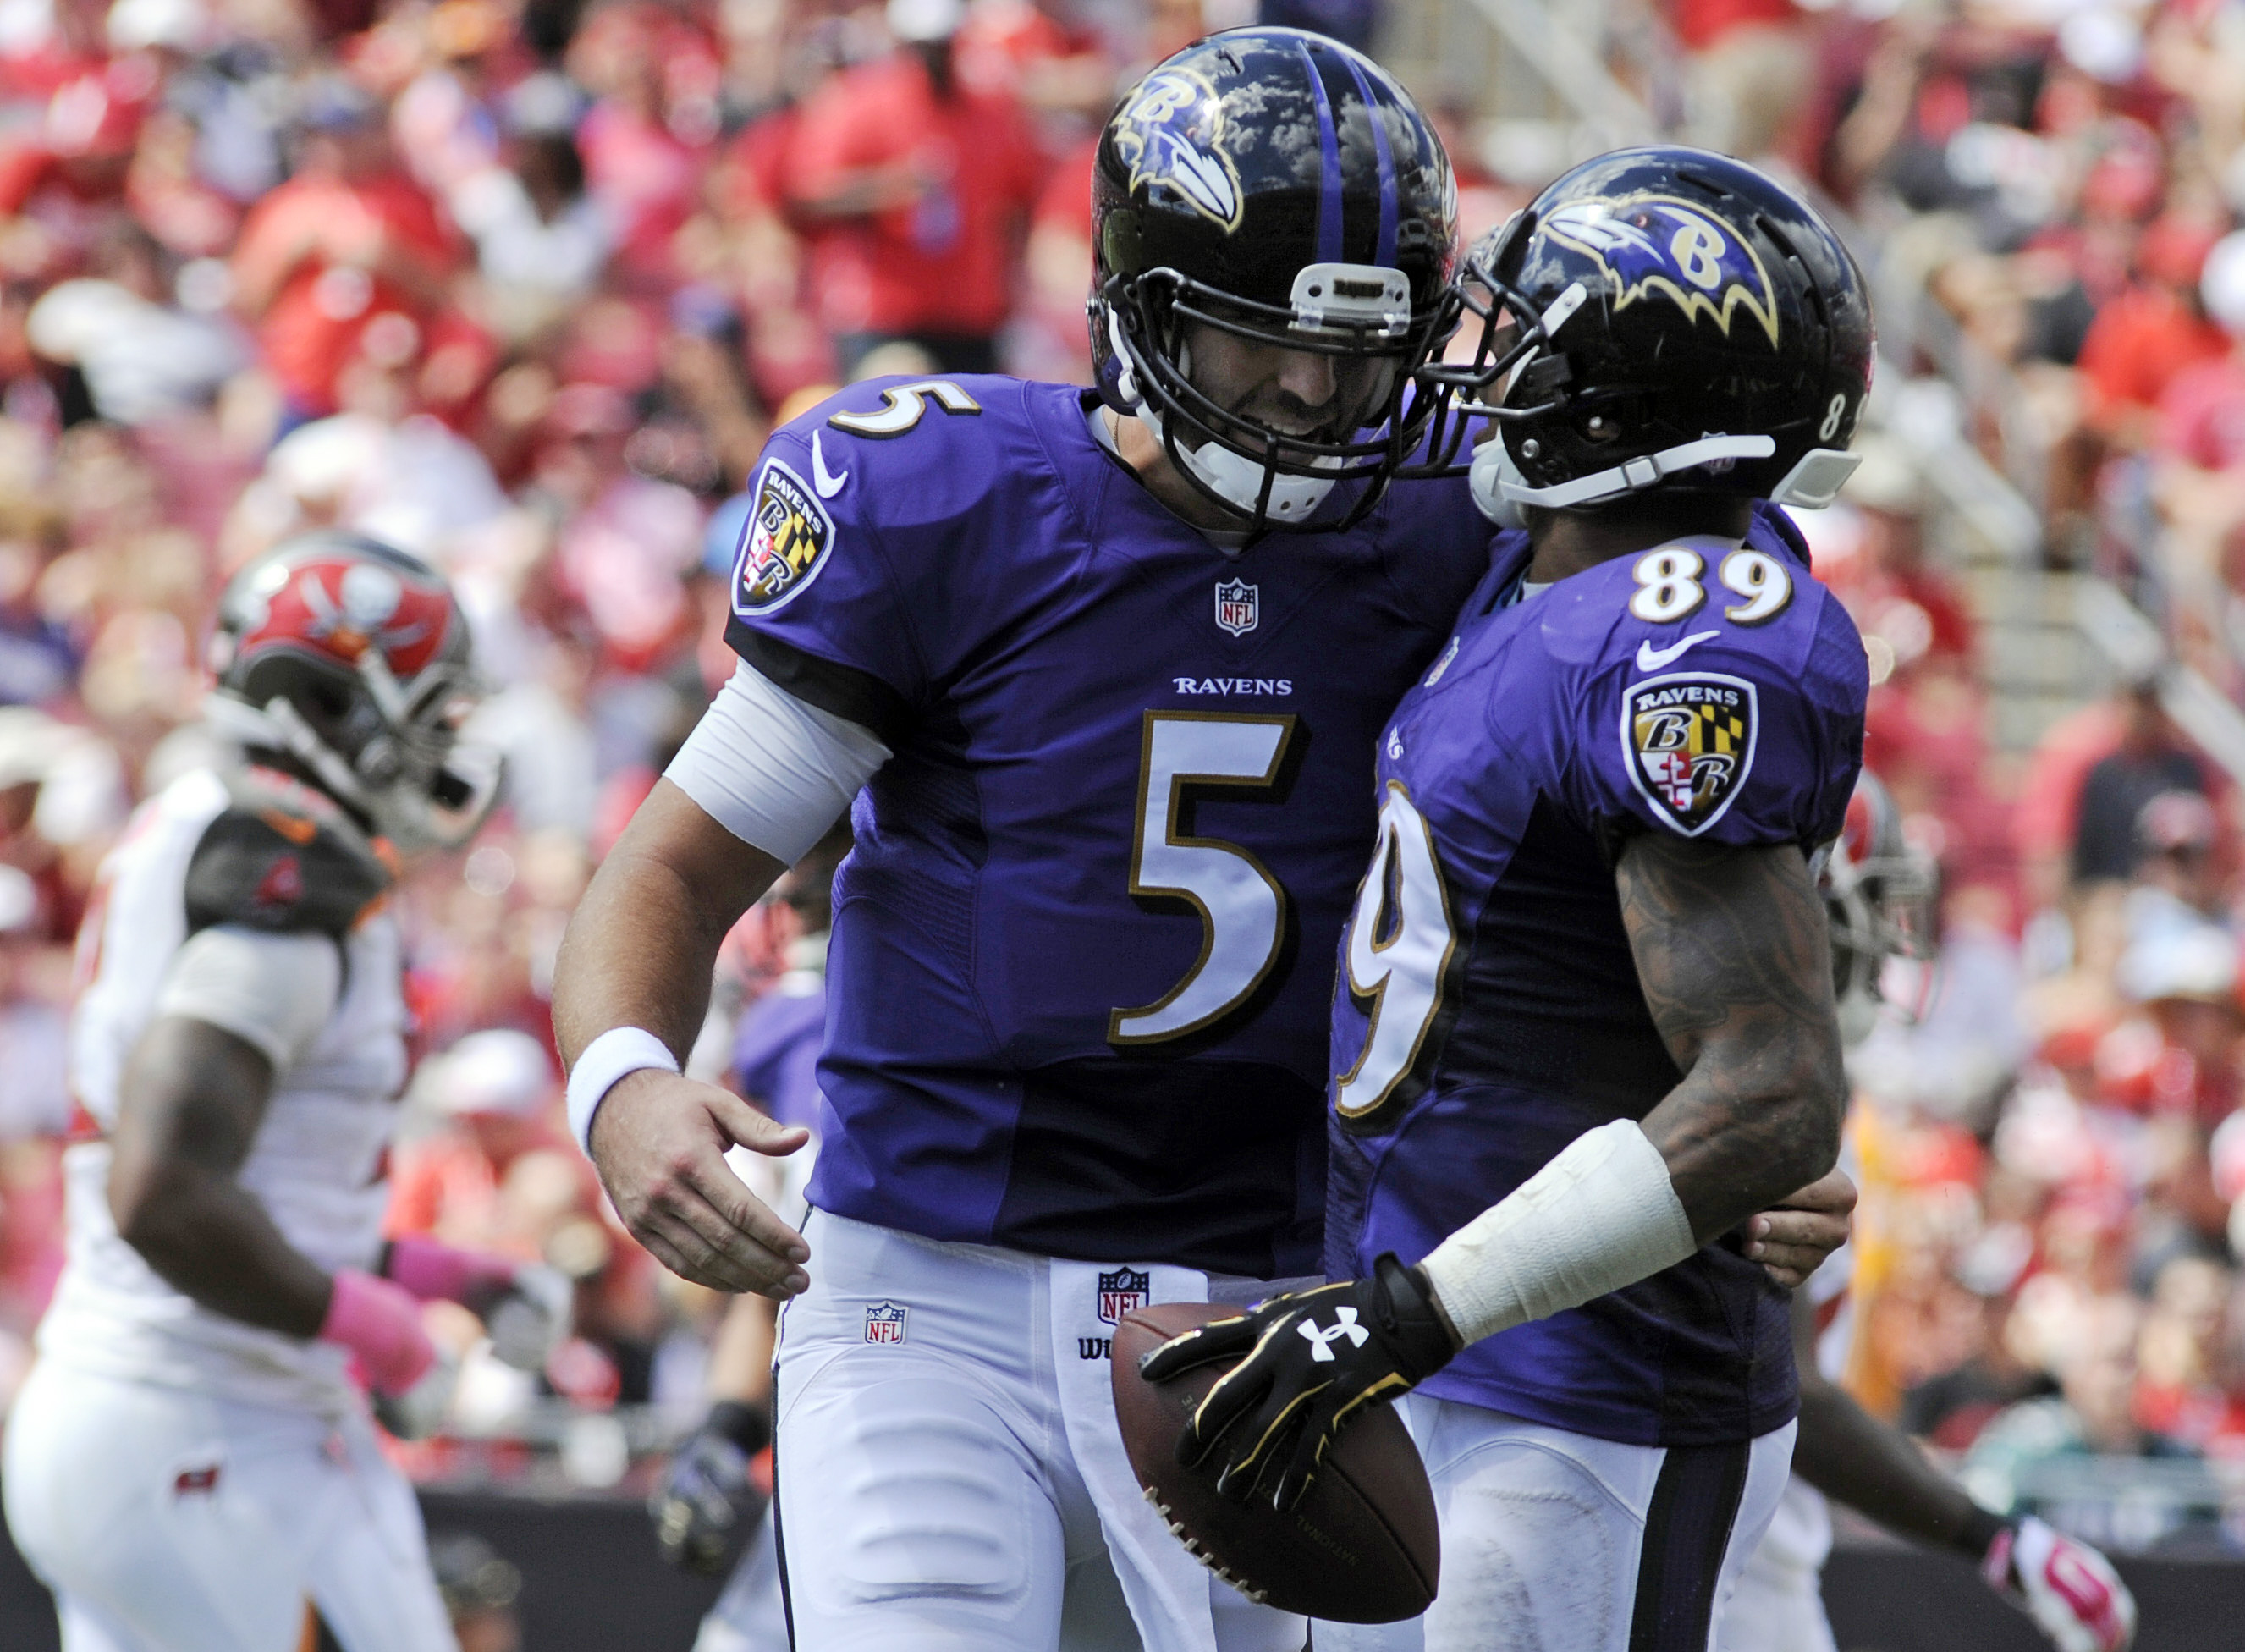 8138376-nfl-baltimore-ravens-at-tampa-bay-buccaneers